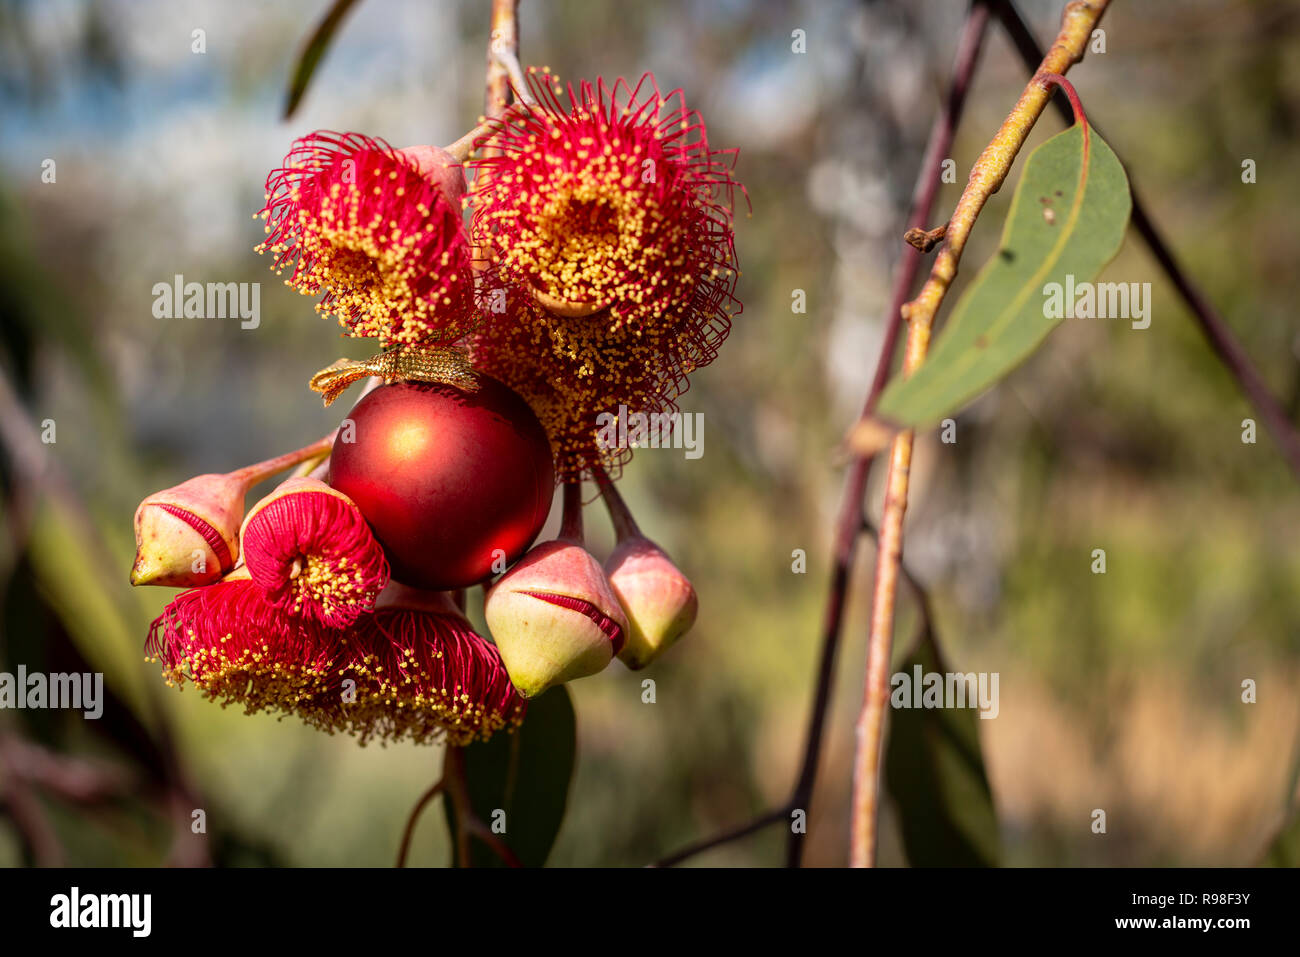 An Australian Christmas, gum nut blossoms and gum nuts with a red Christmas bauble, horizontal - Stock Image